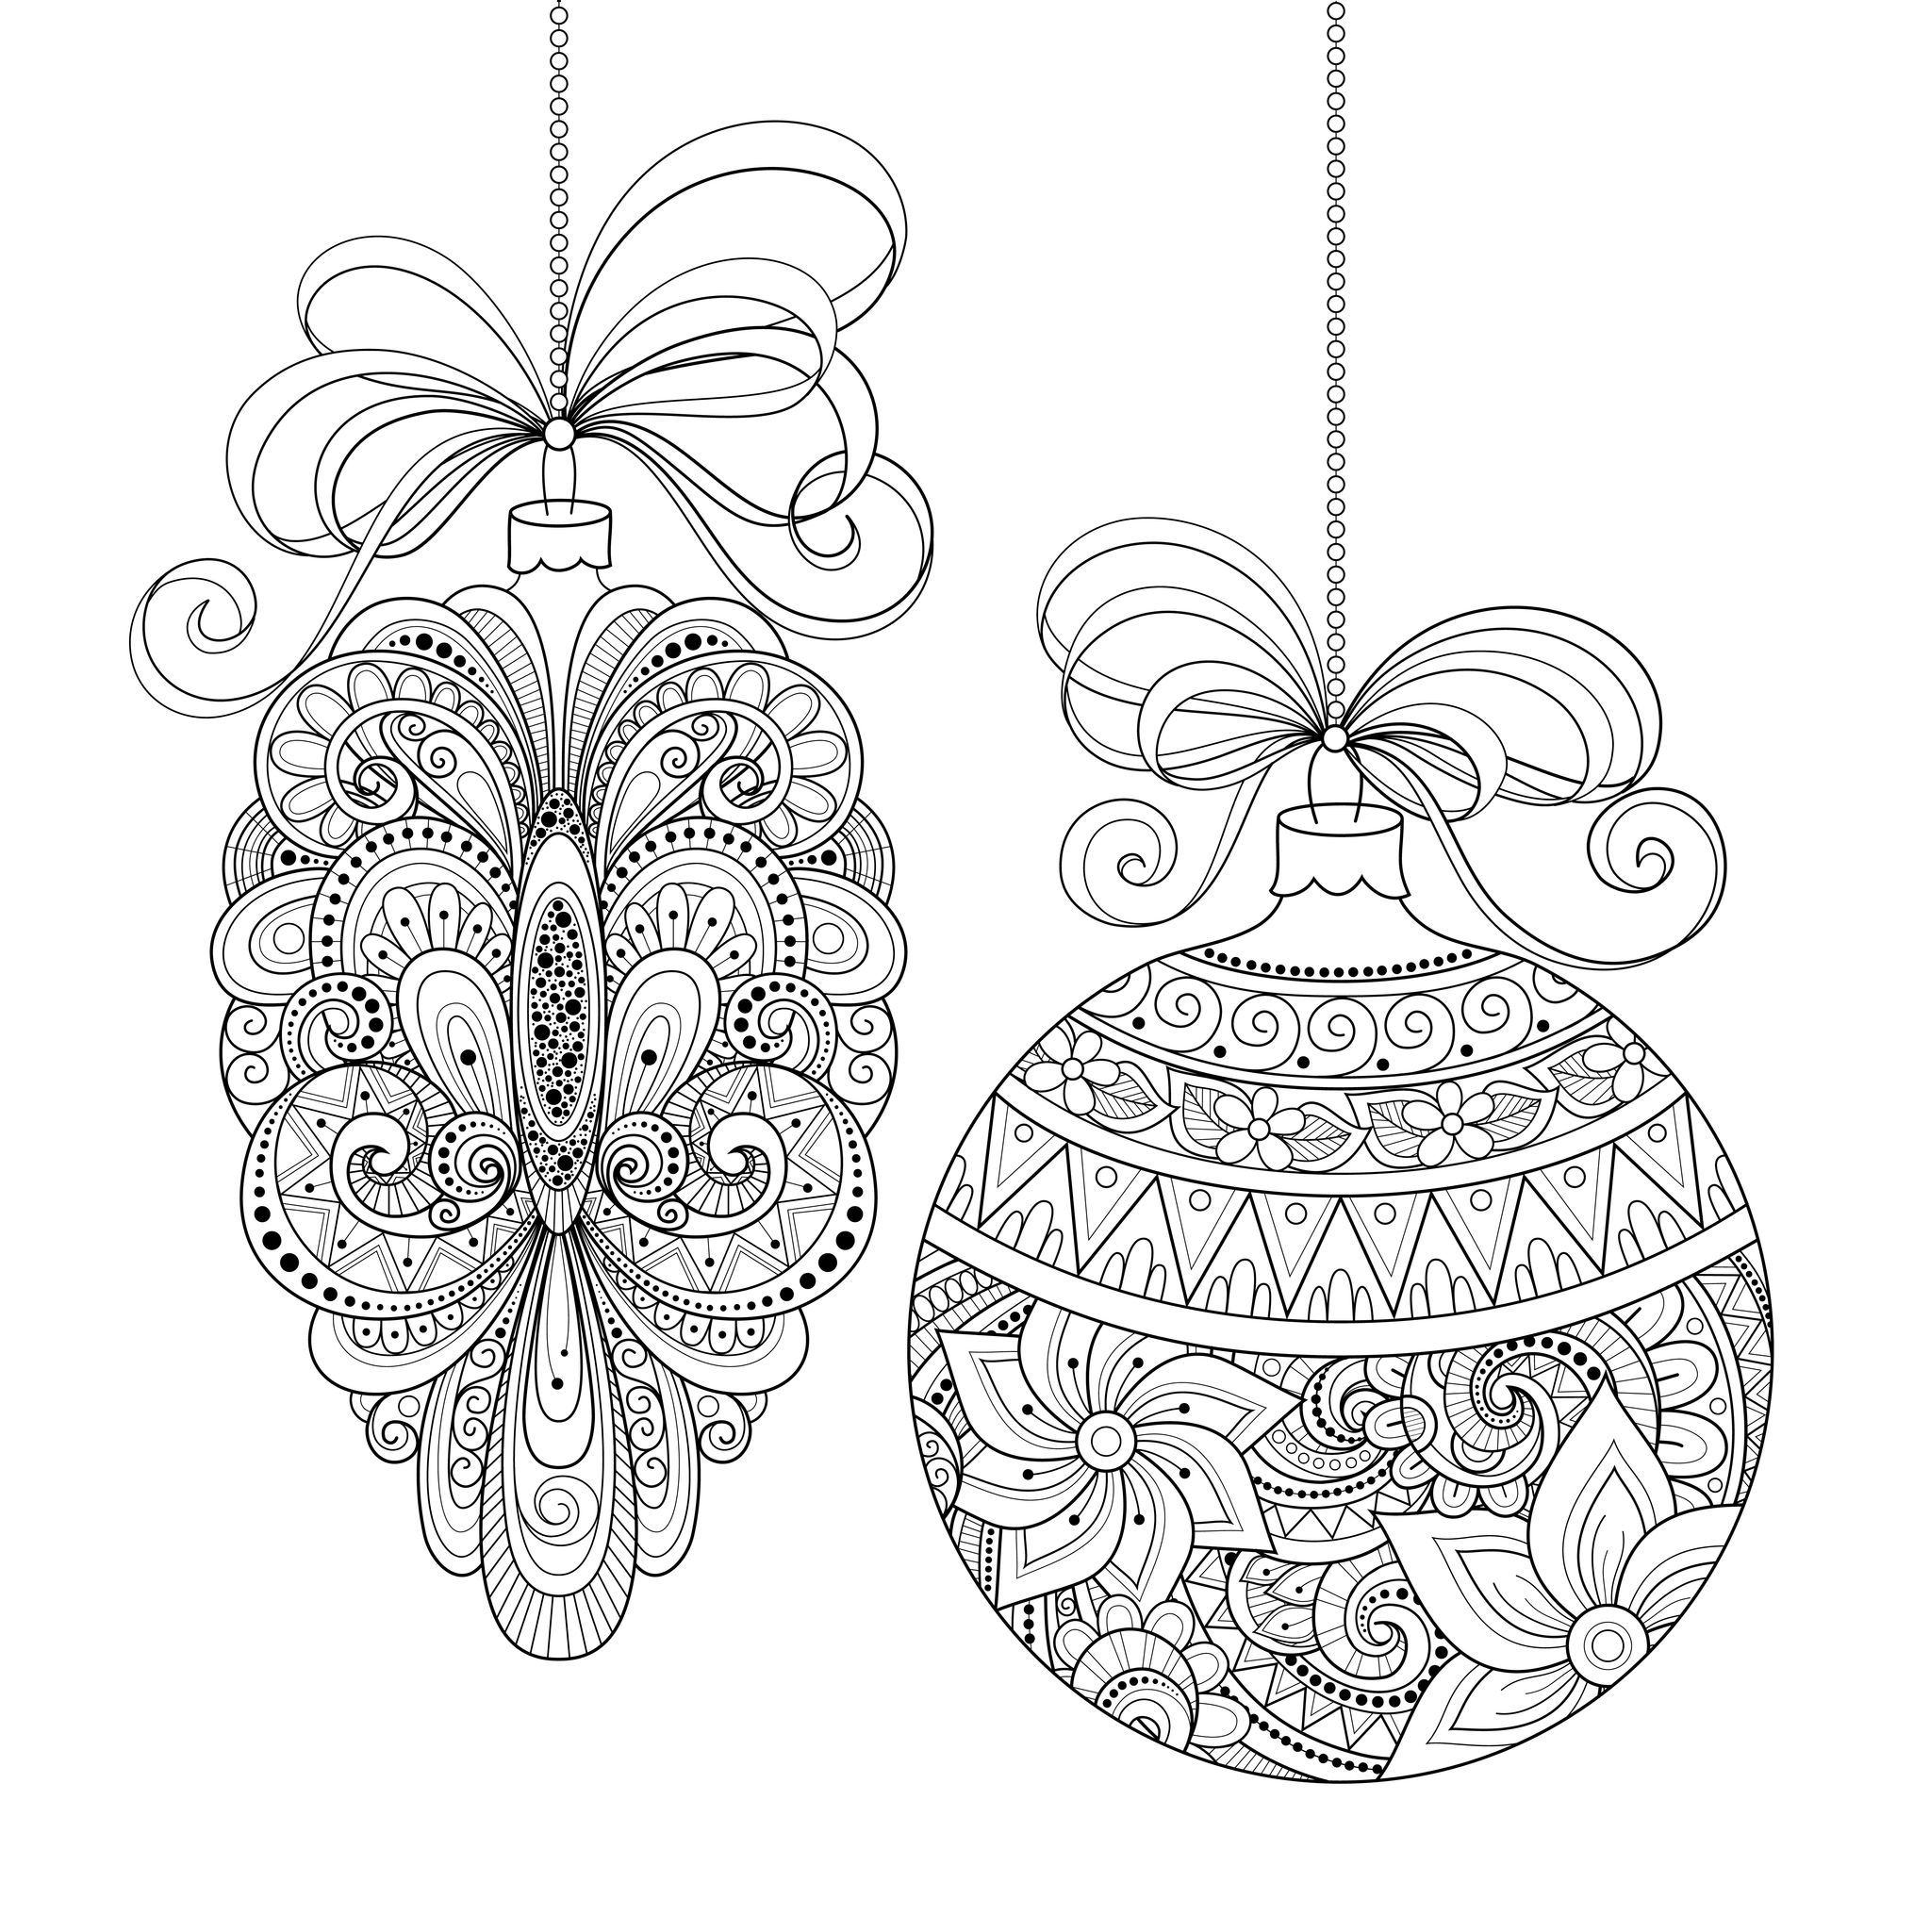 Coloring pictures for adults - Coloring Adult Christmas Ornaments By Irinarivoruchko Free To Print